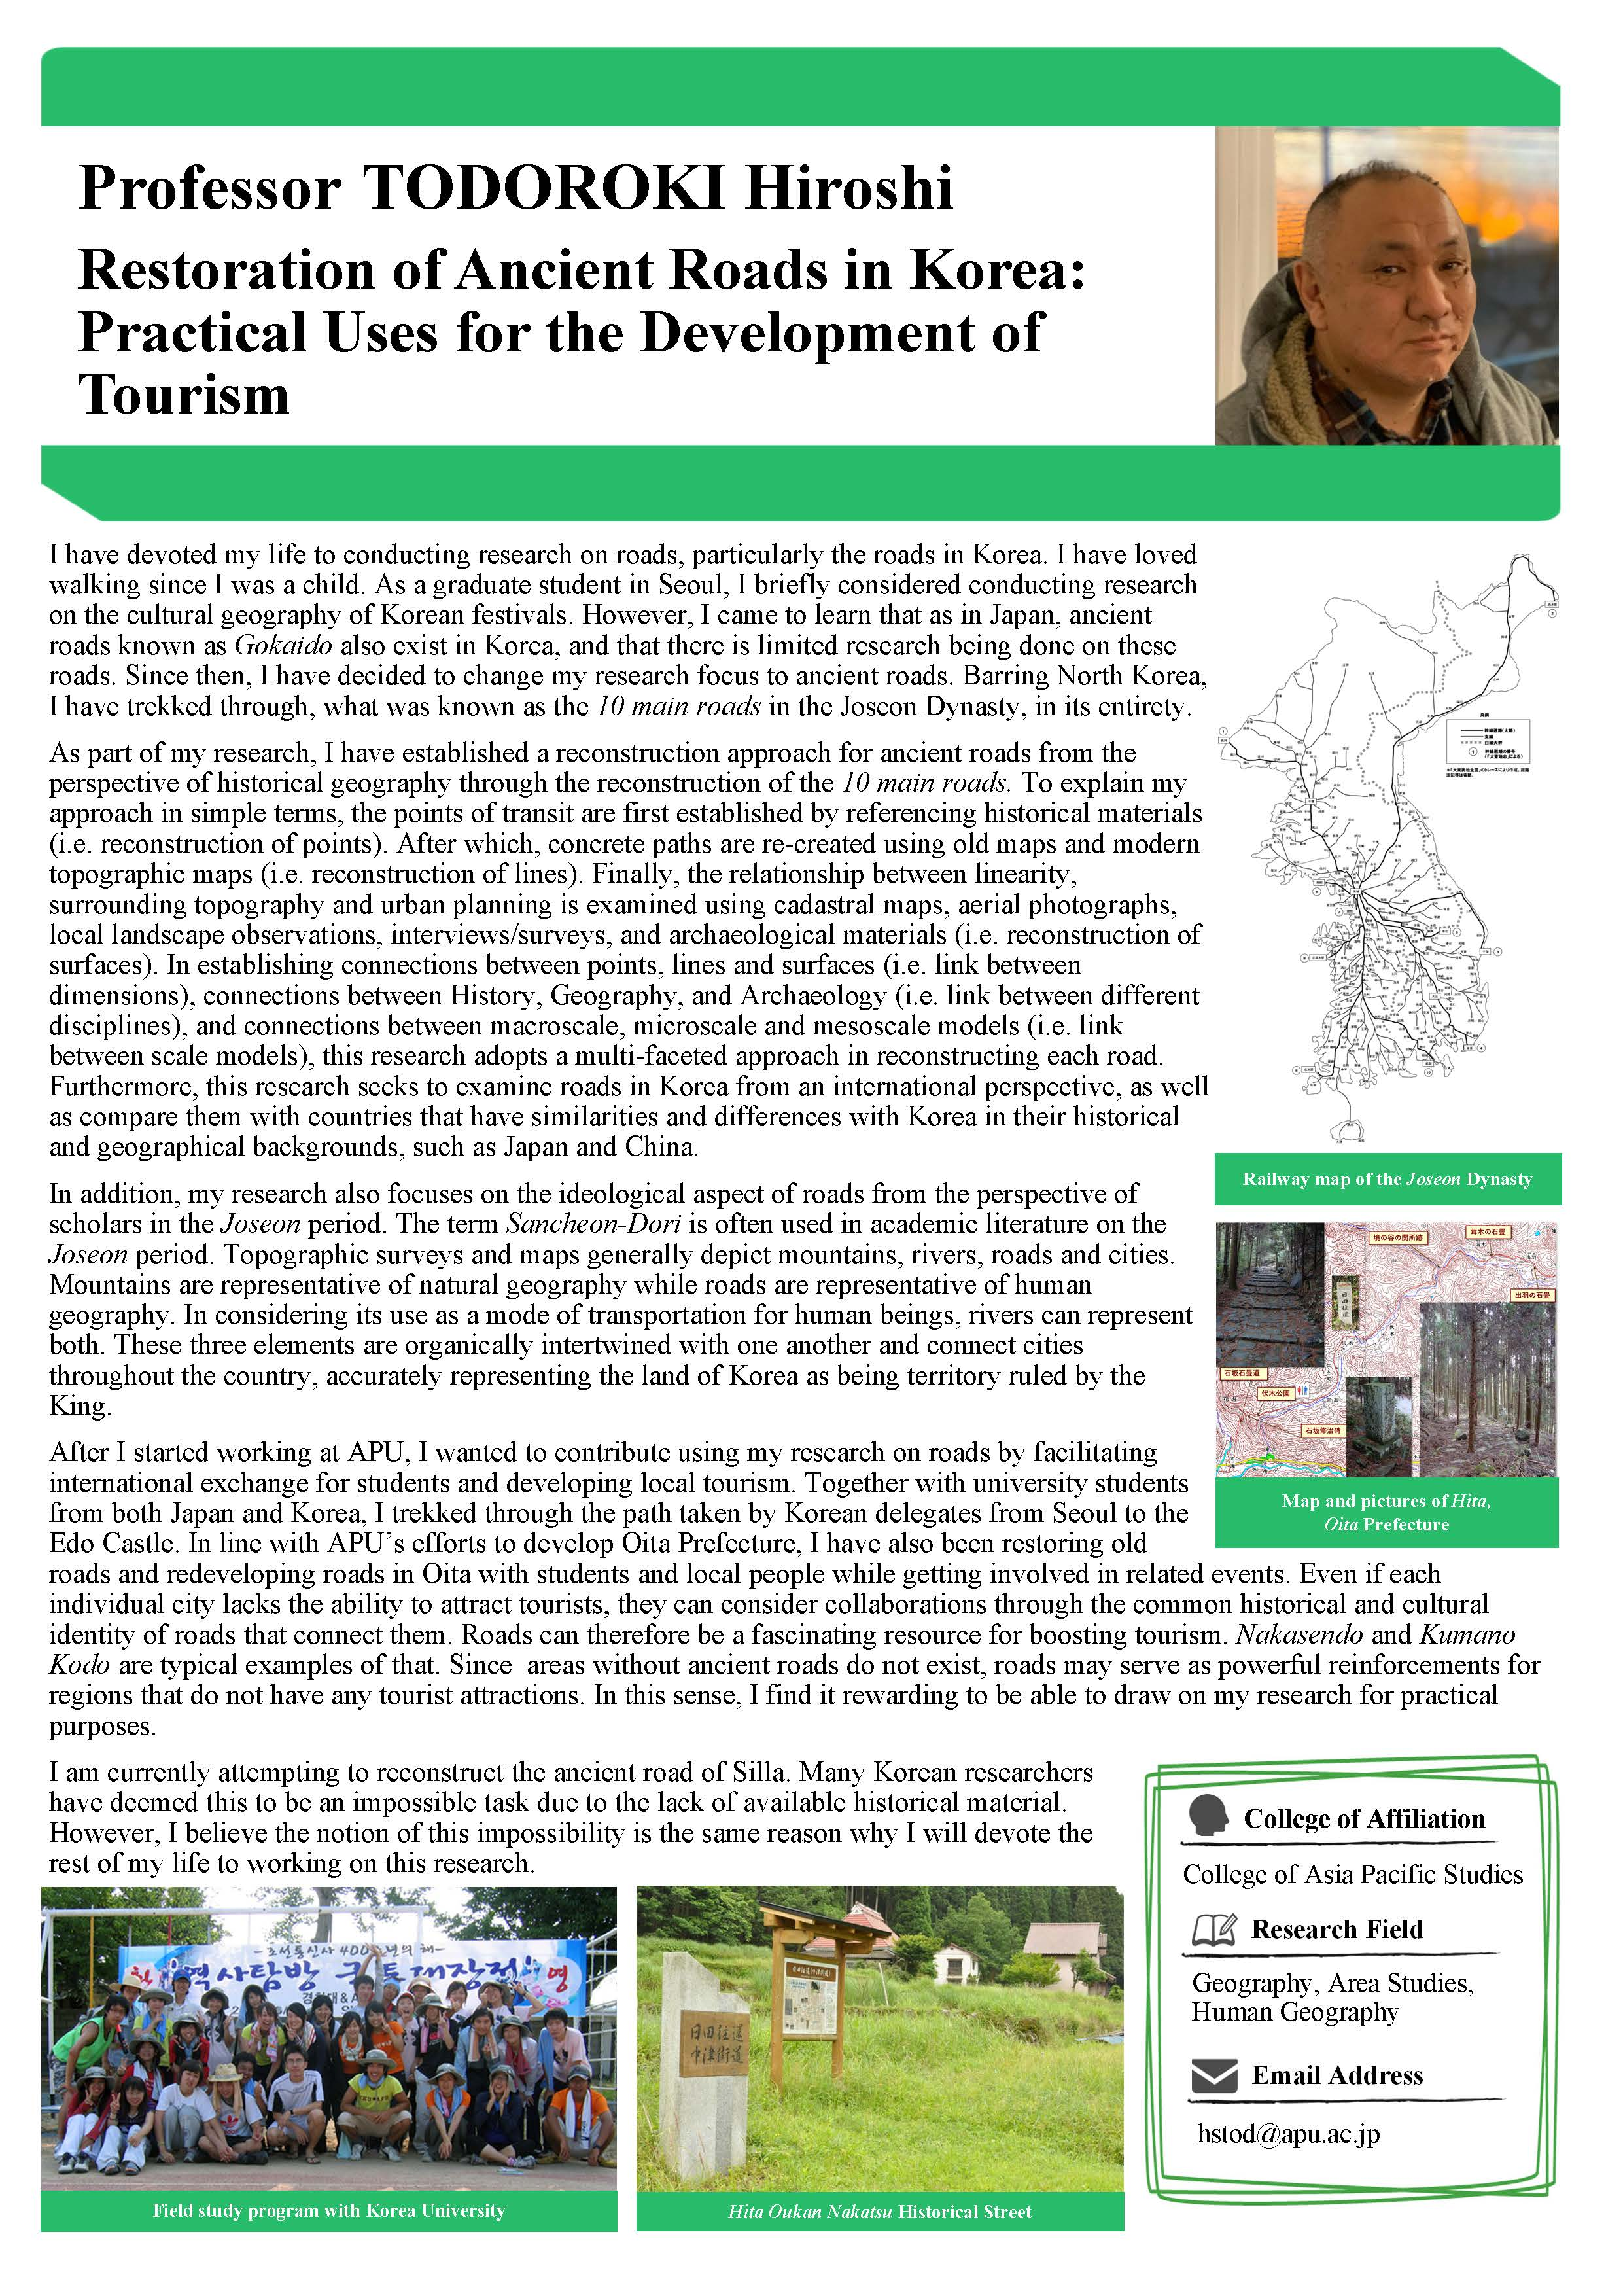 Restoration of Ancient Roads in Korea: Practical Uses for the Development of Tourism